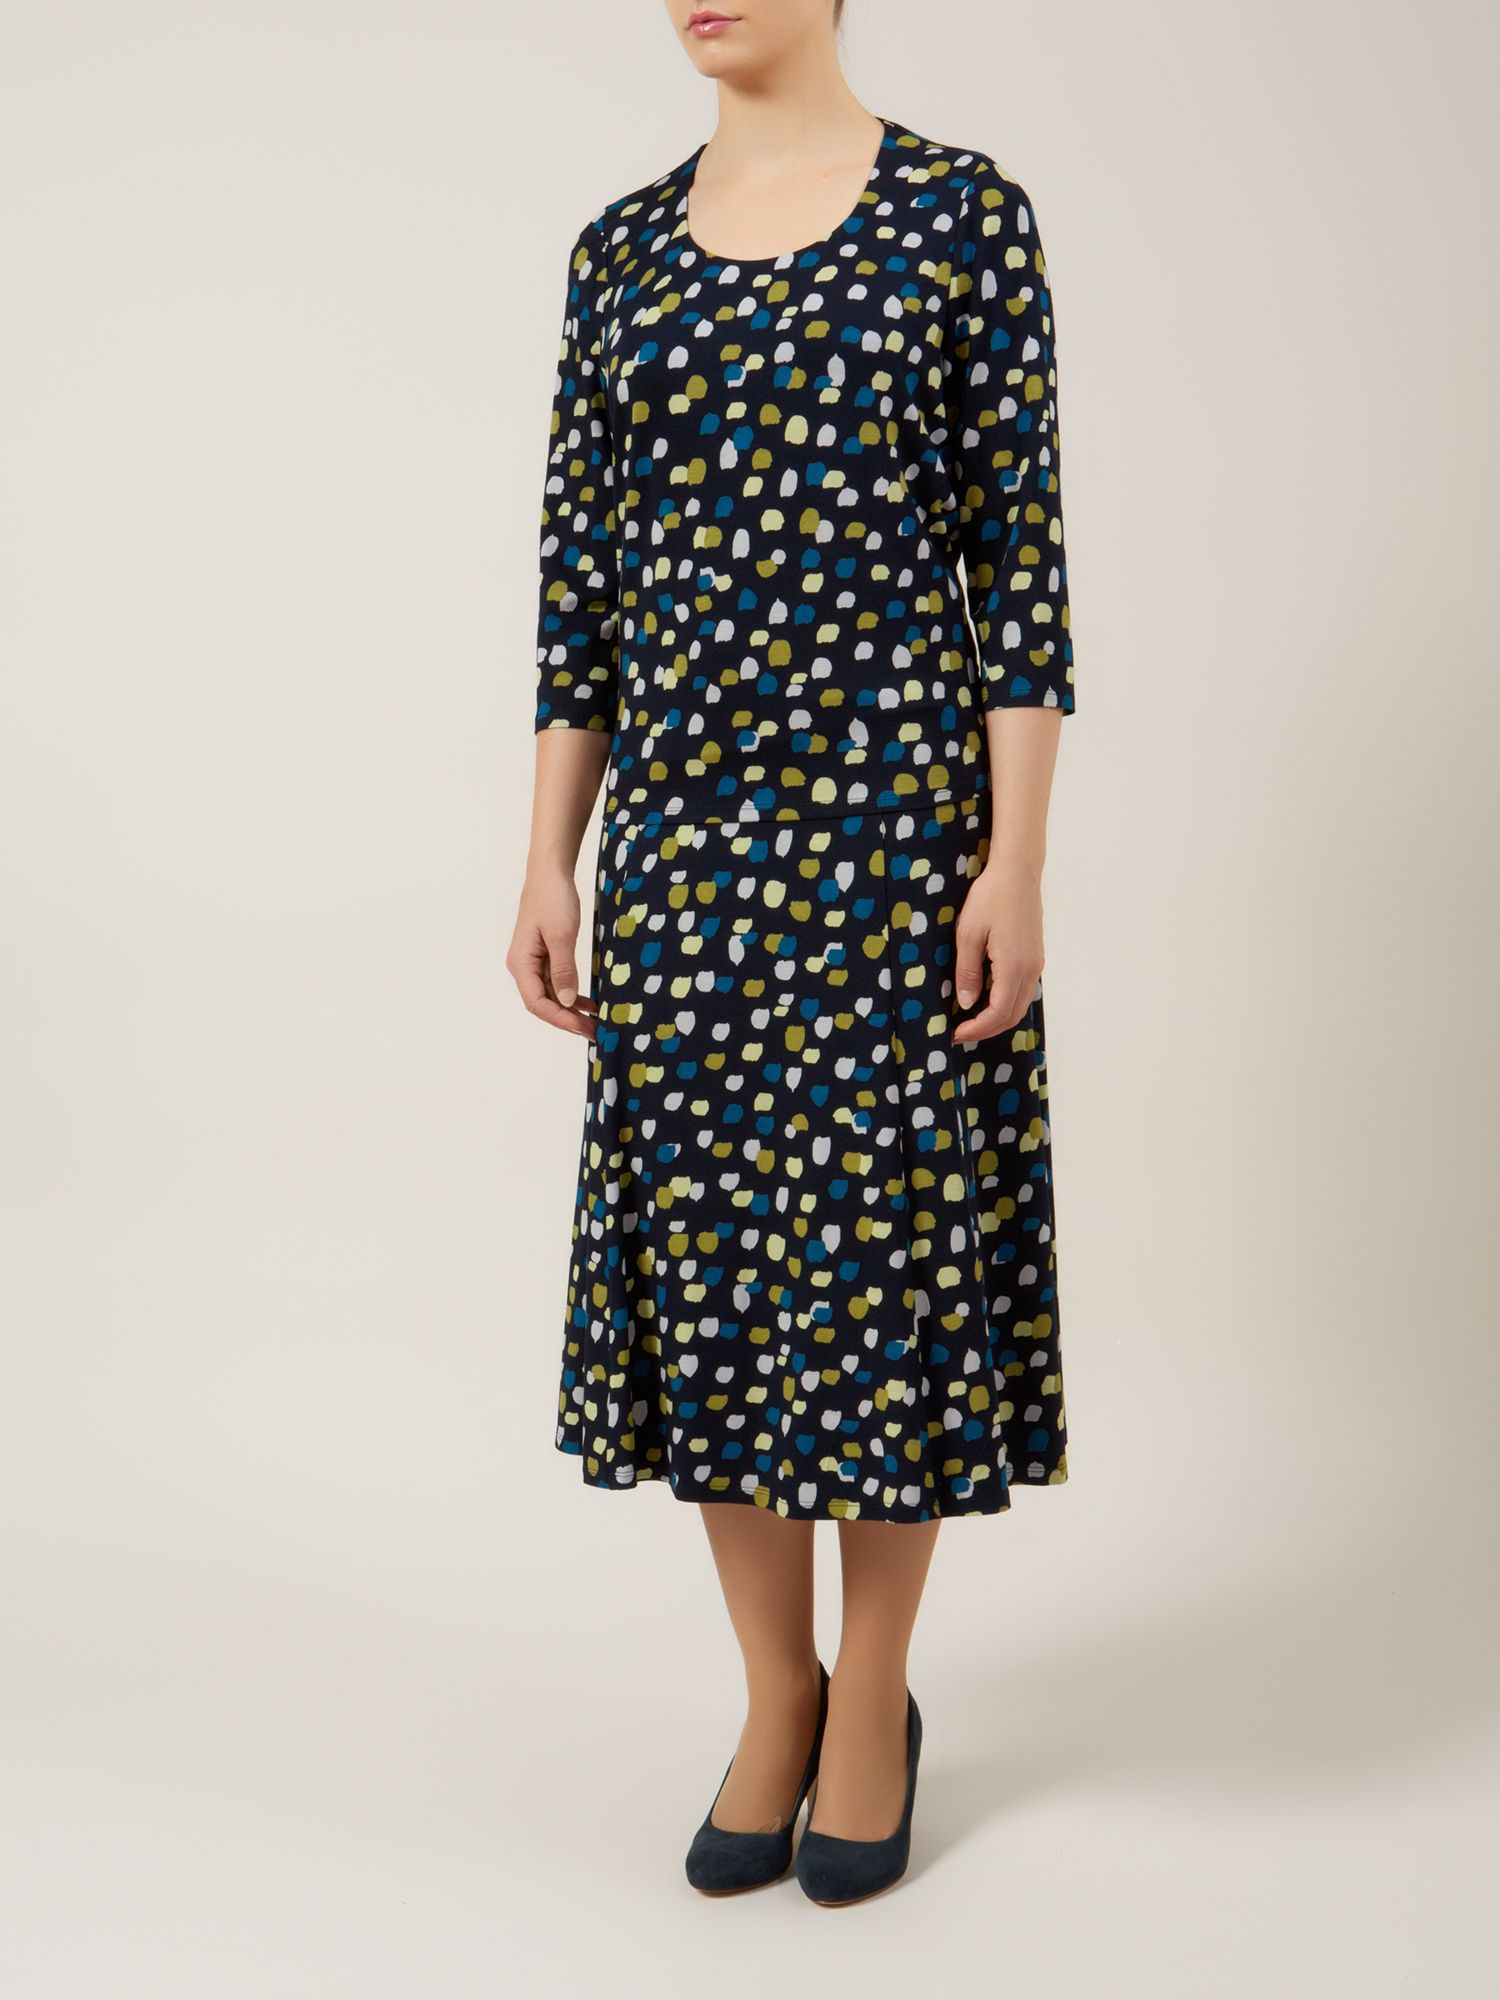 Painterly spot shorter length fit & flare skirt